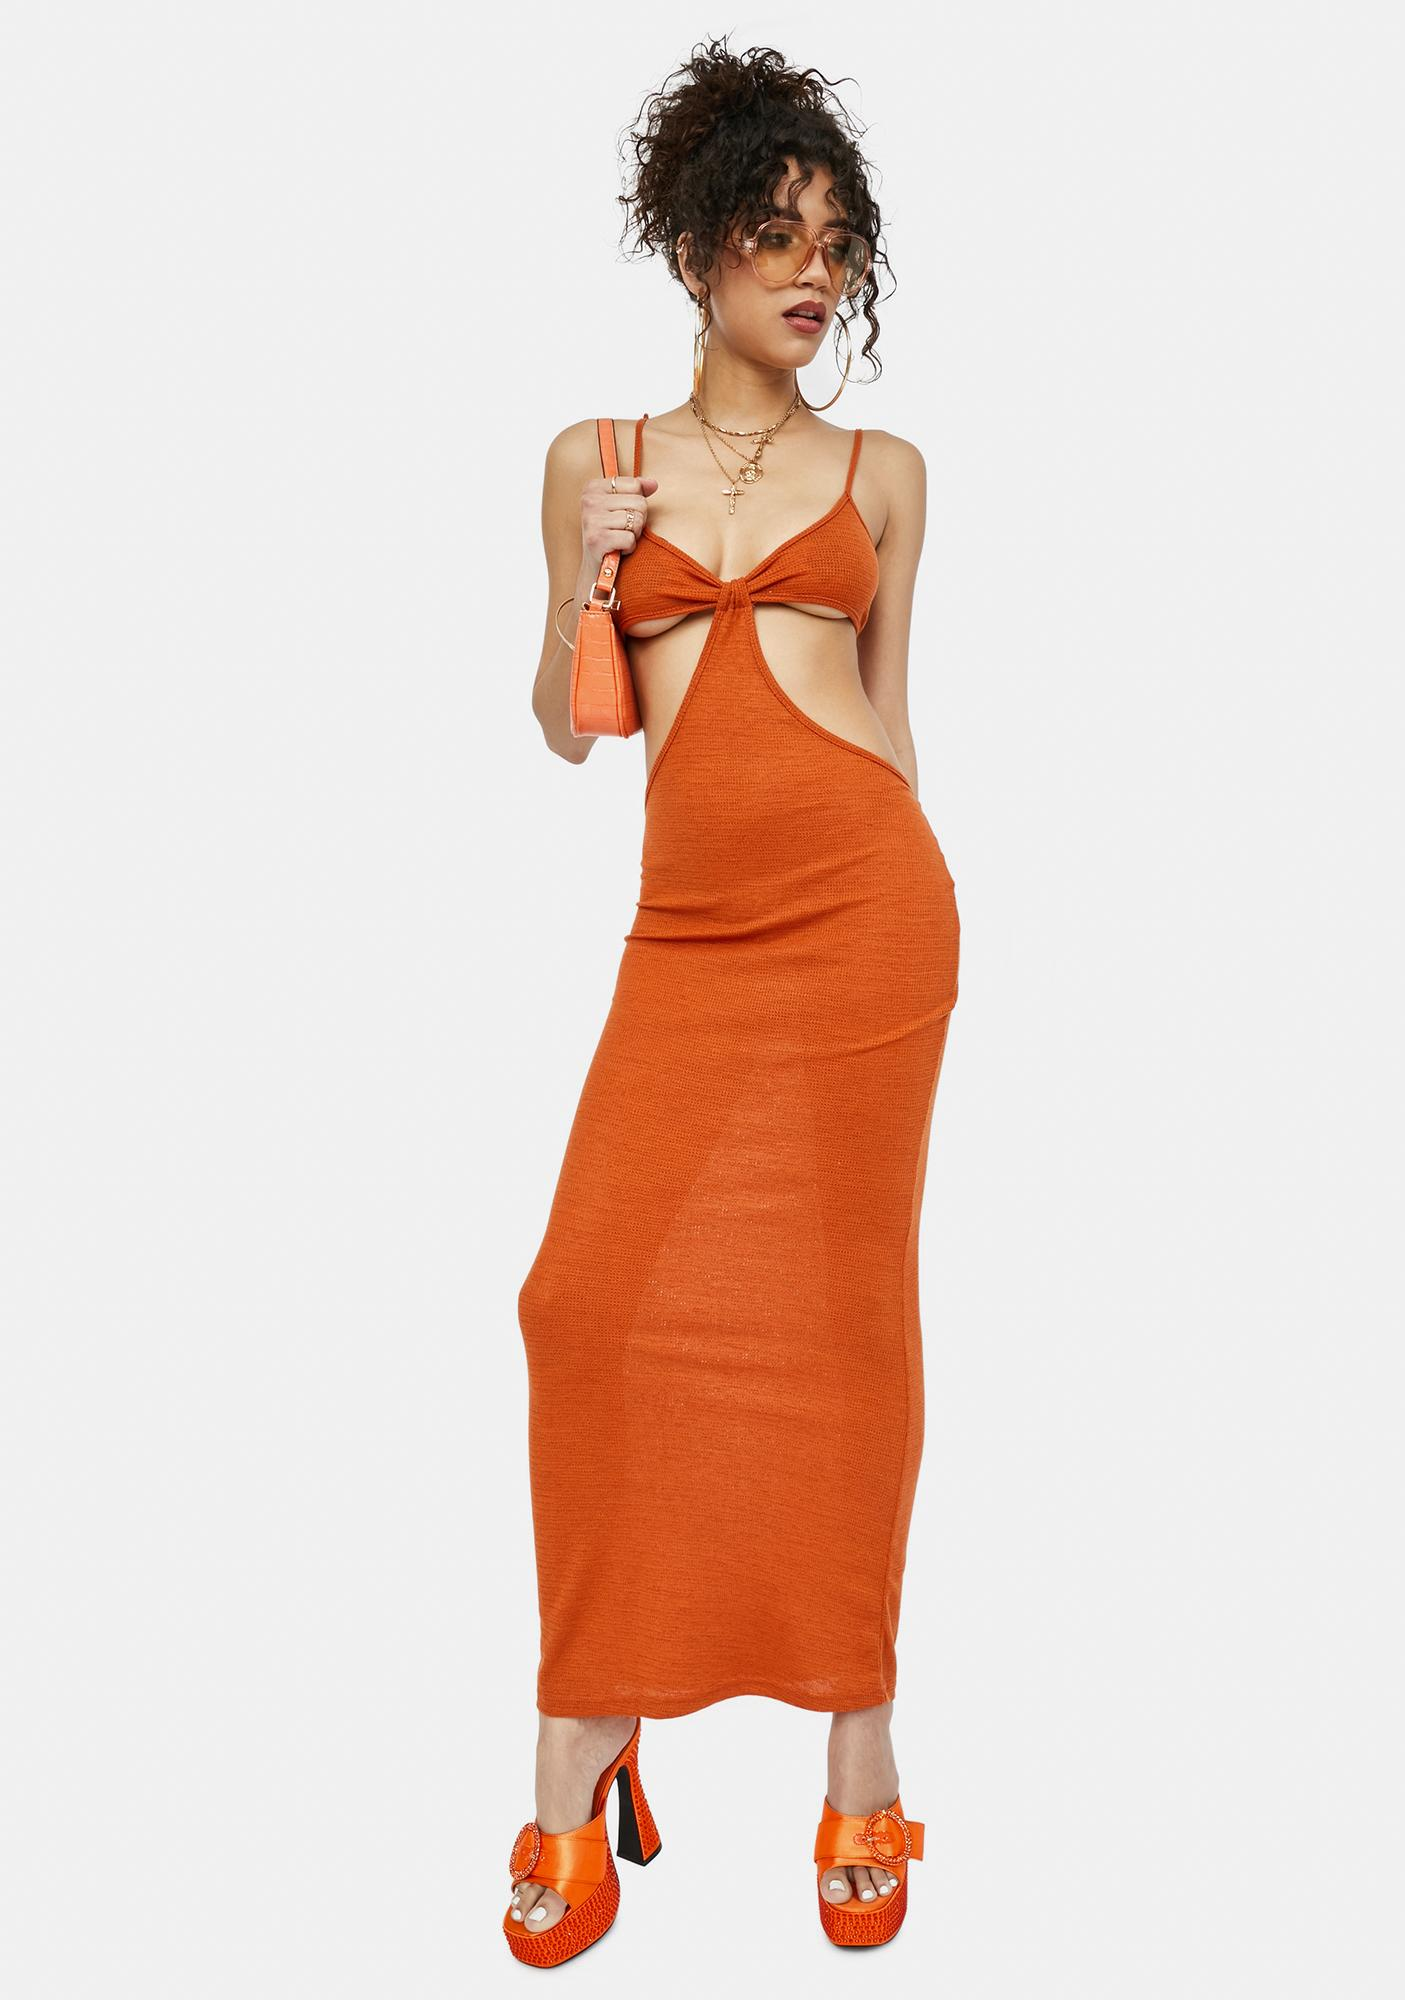 Amber Check My Style Cut Out Maxi Dress